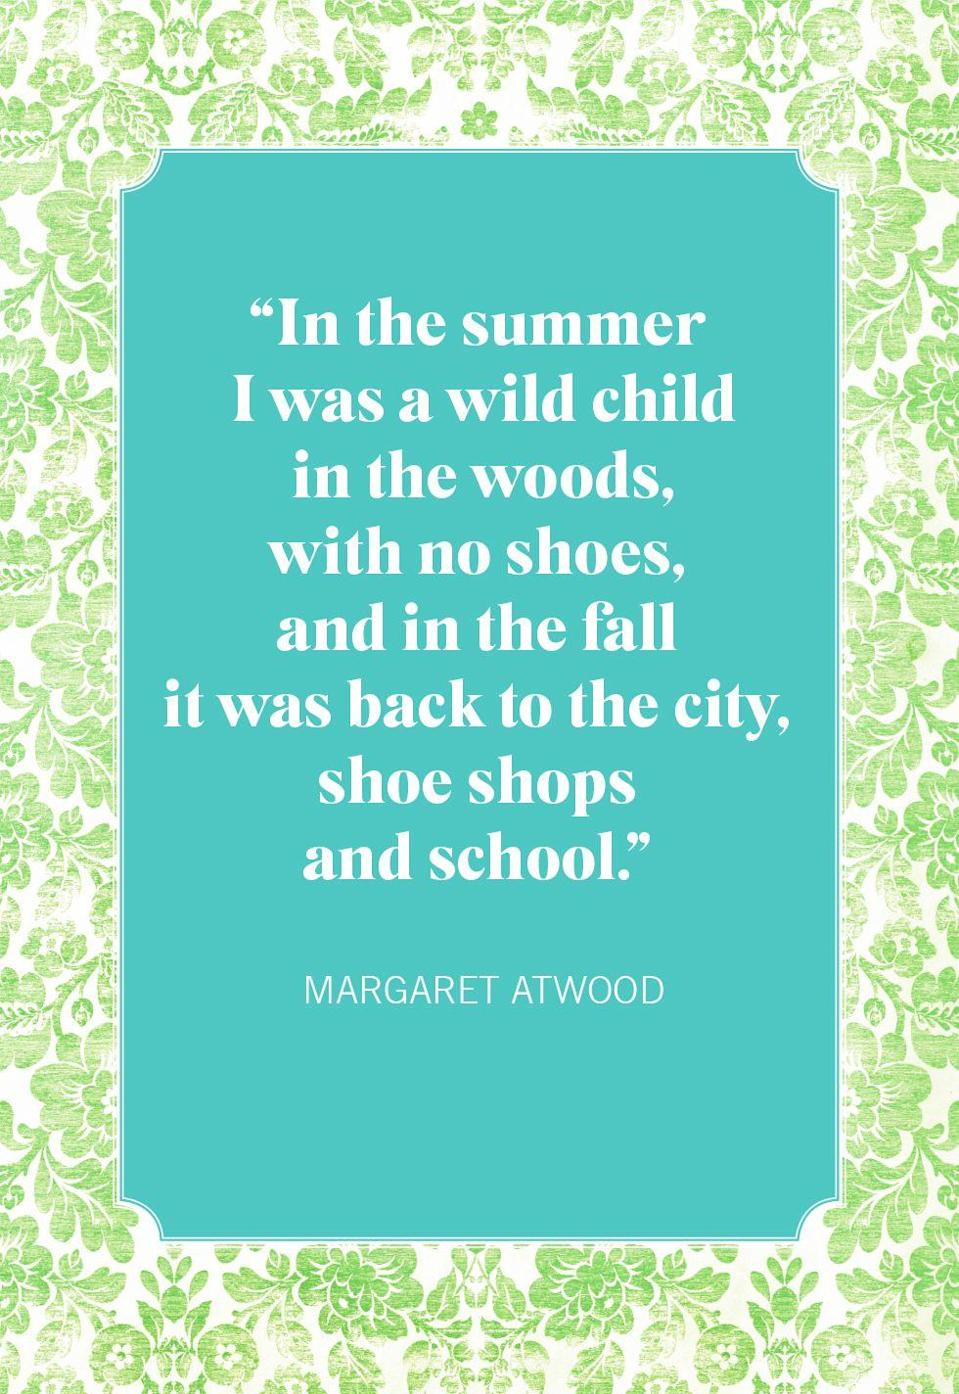 """<p>""""In the summer I was a wild child in the woods, with no shoes, and in the fall it was back to the city, shoe shops and school.""""</p>"""